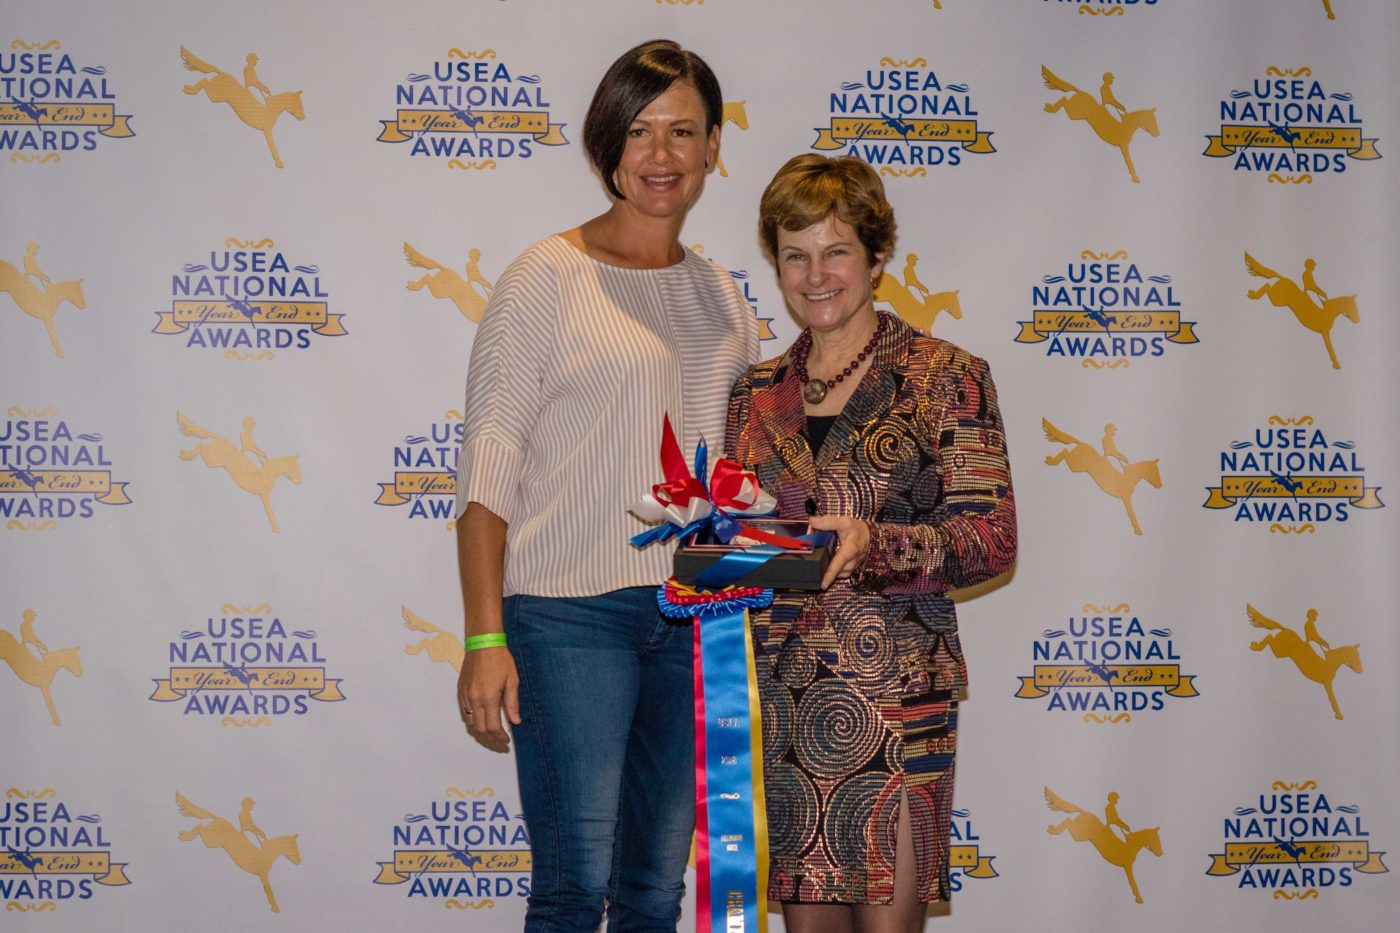 Tamra Smith accepts the Preliminary Horse of the Year award for Staccato.